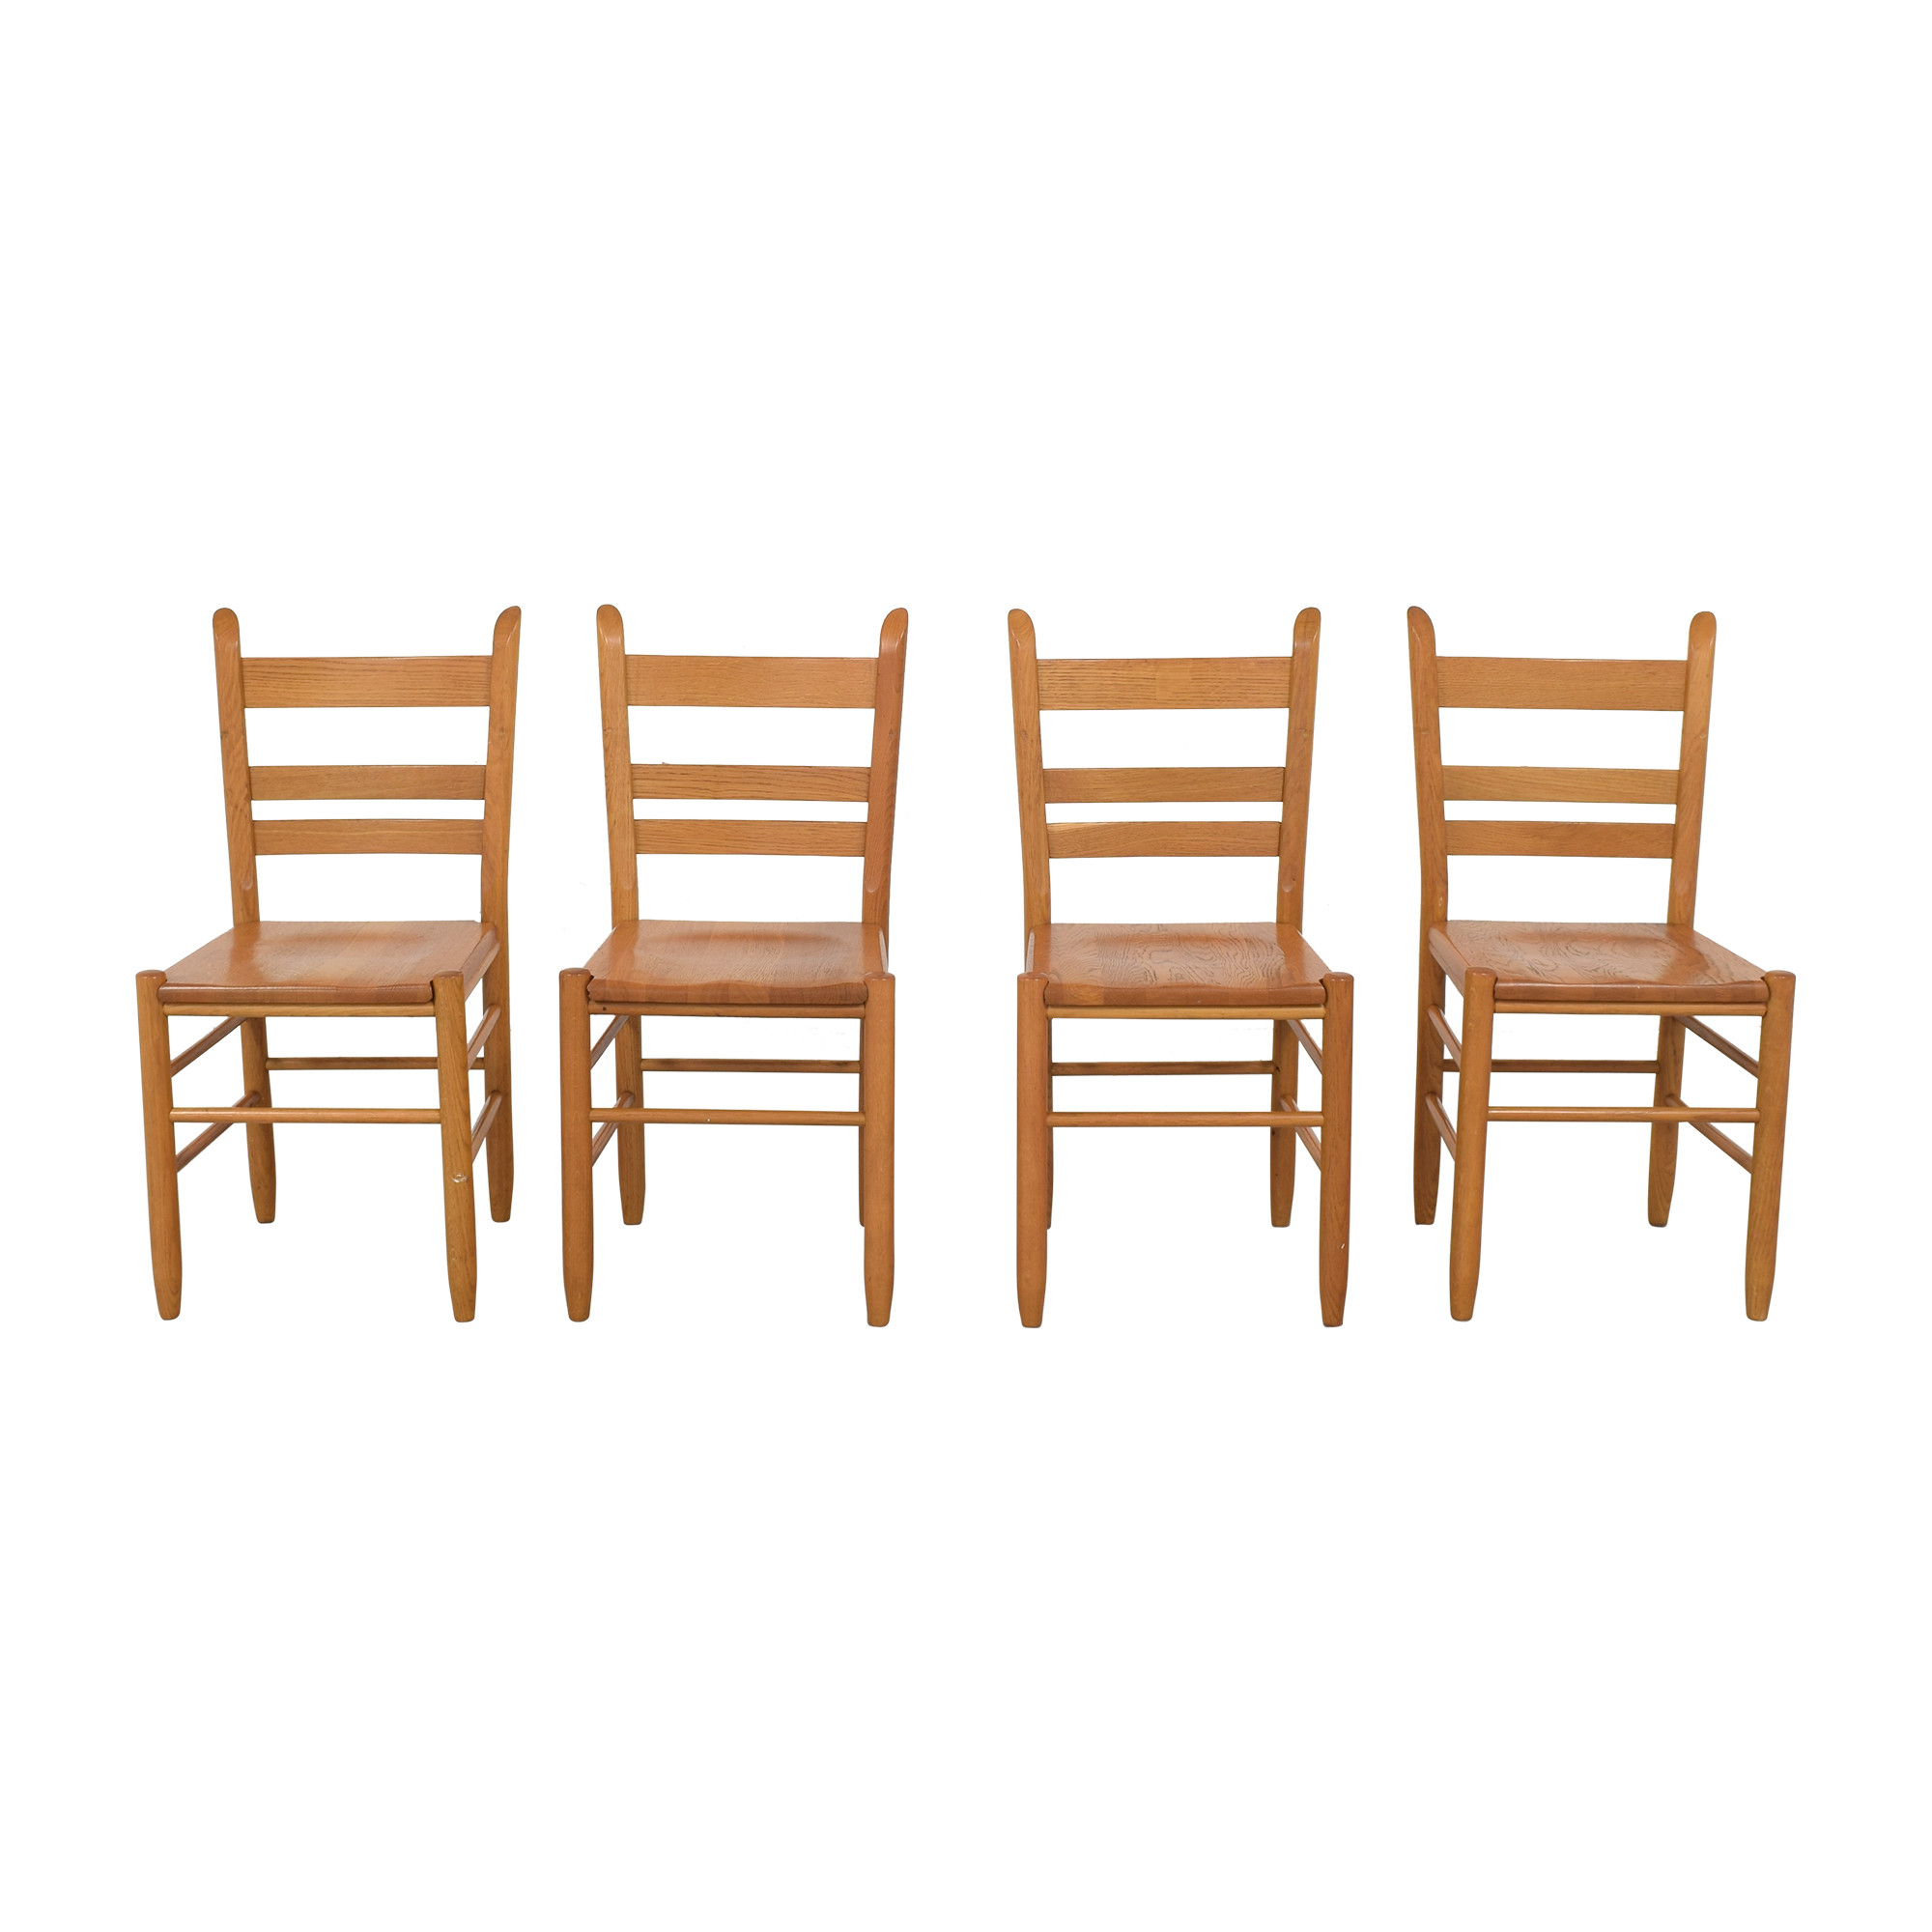 Workbench Dining Chairs / Chairs